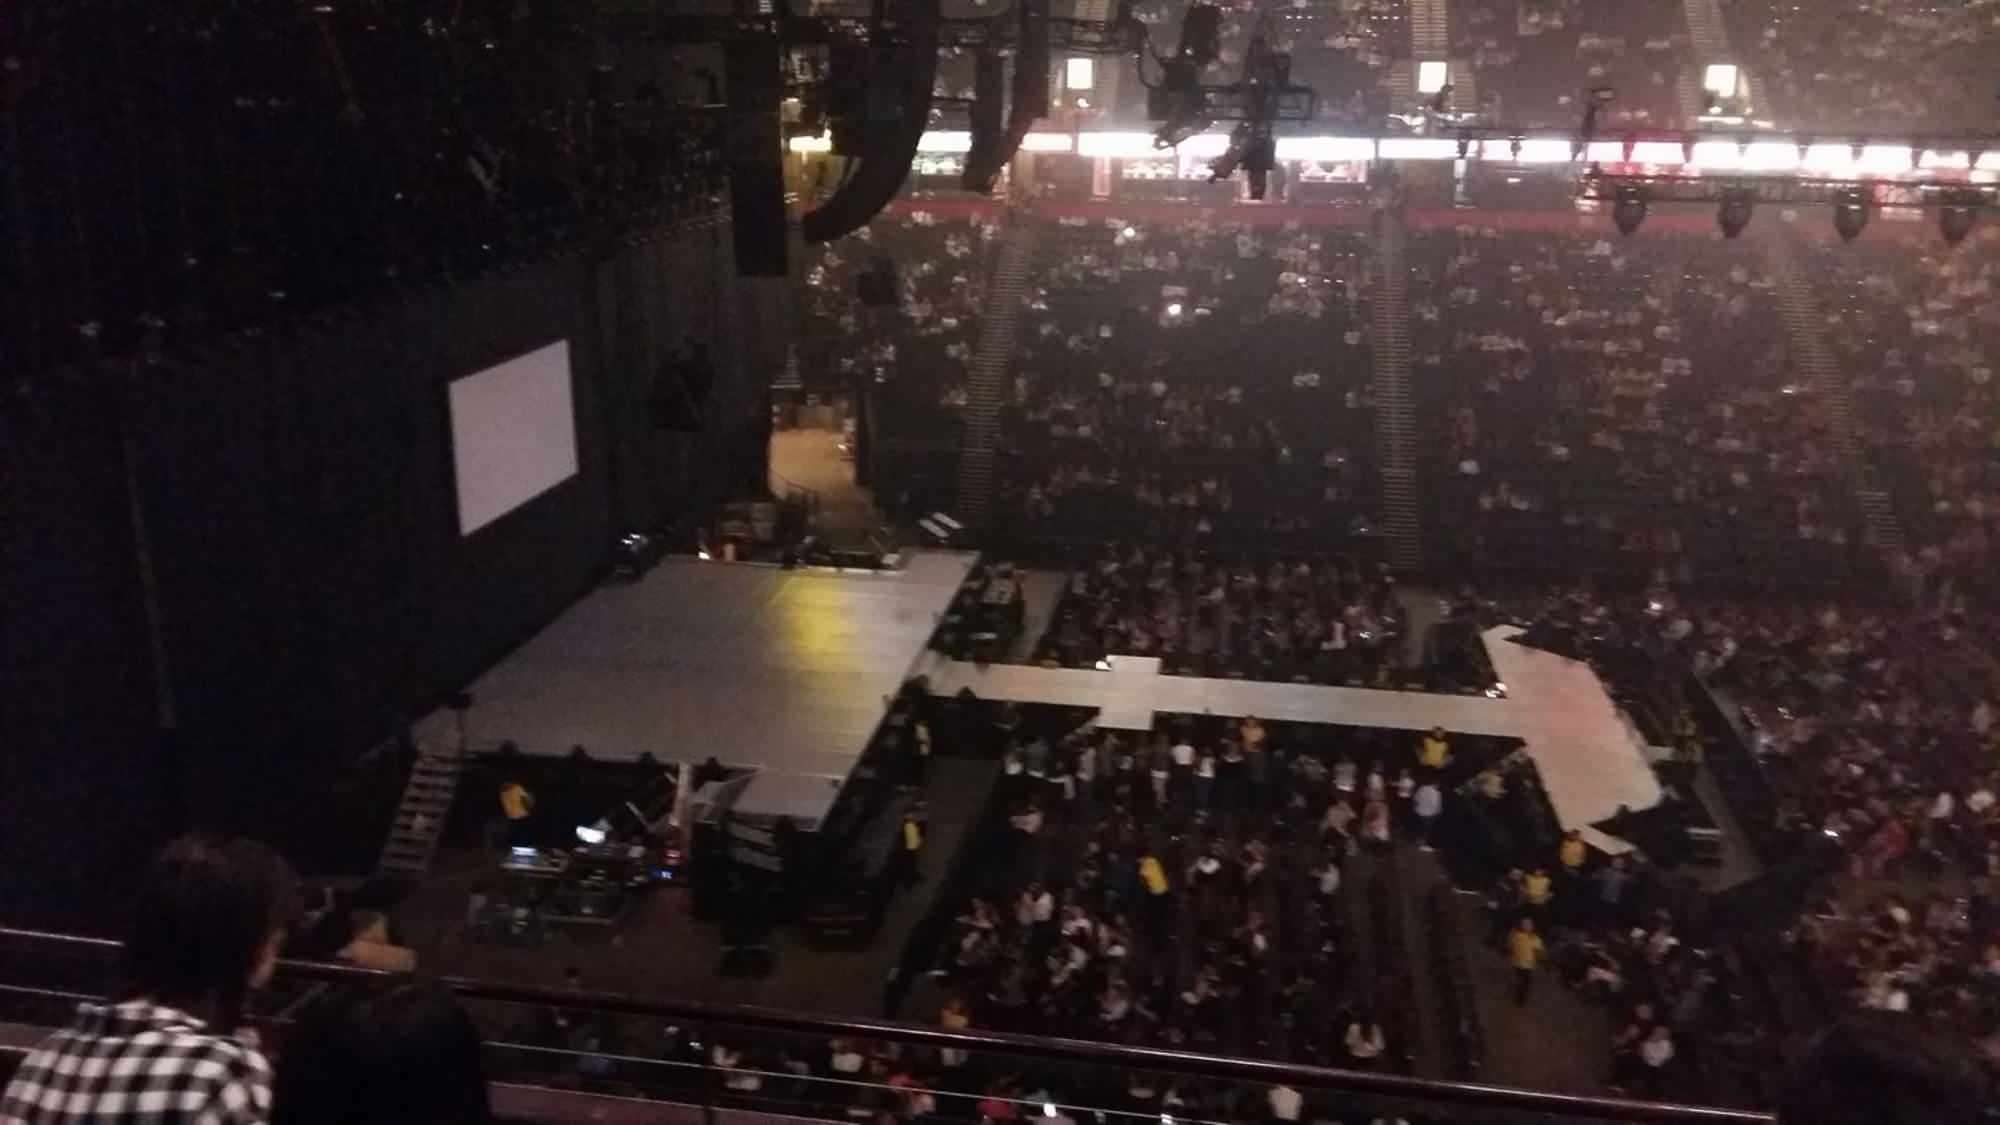 View from Seat Block 202 at Manchester Arena